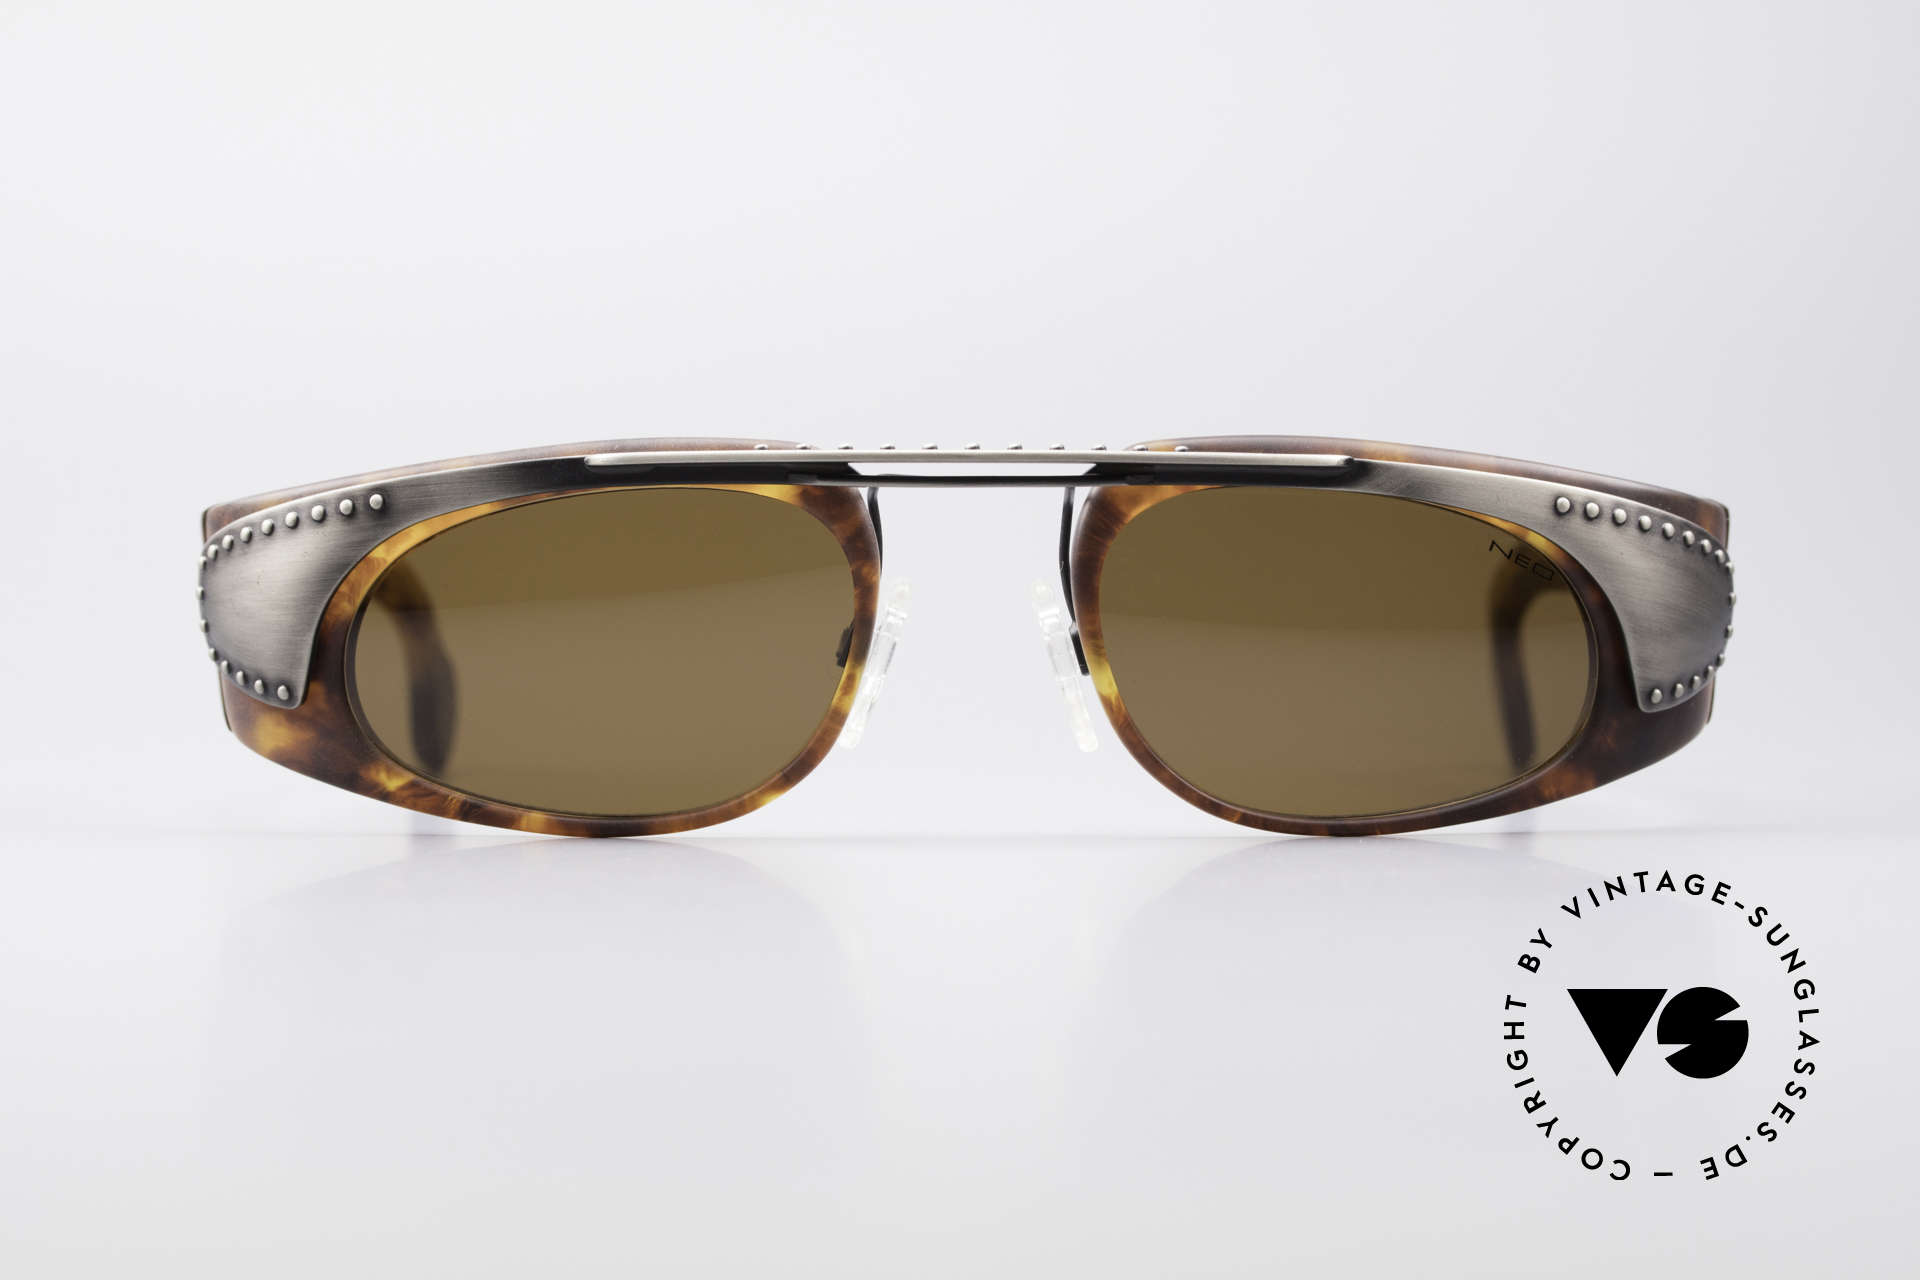 Neostyle Holiday 2002 Vintage Steampunk Sunglasses, spectacular frame construction (Industrial Style), Made for Men